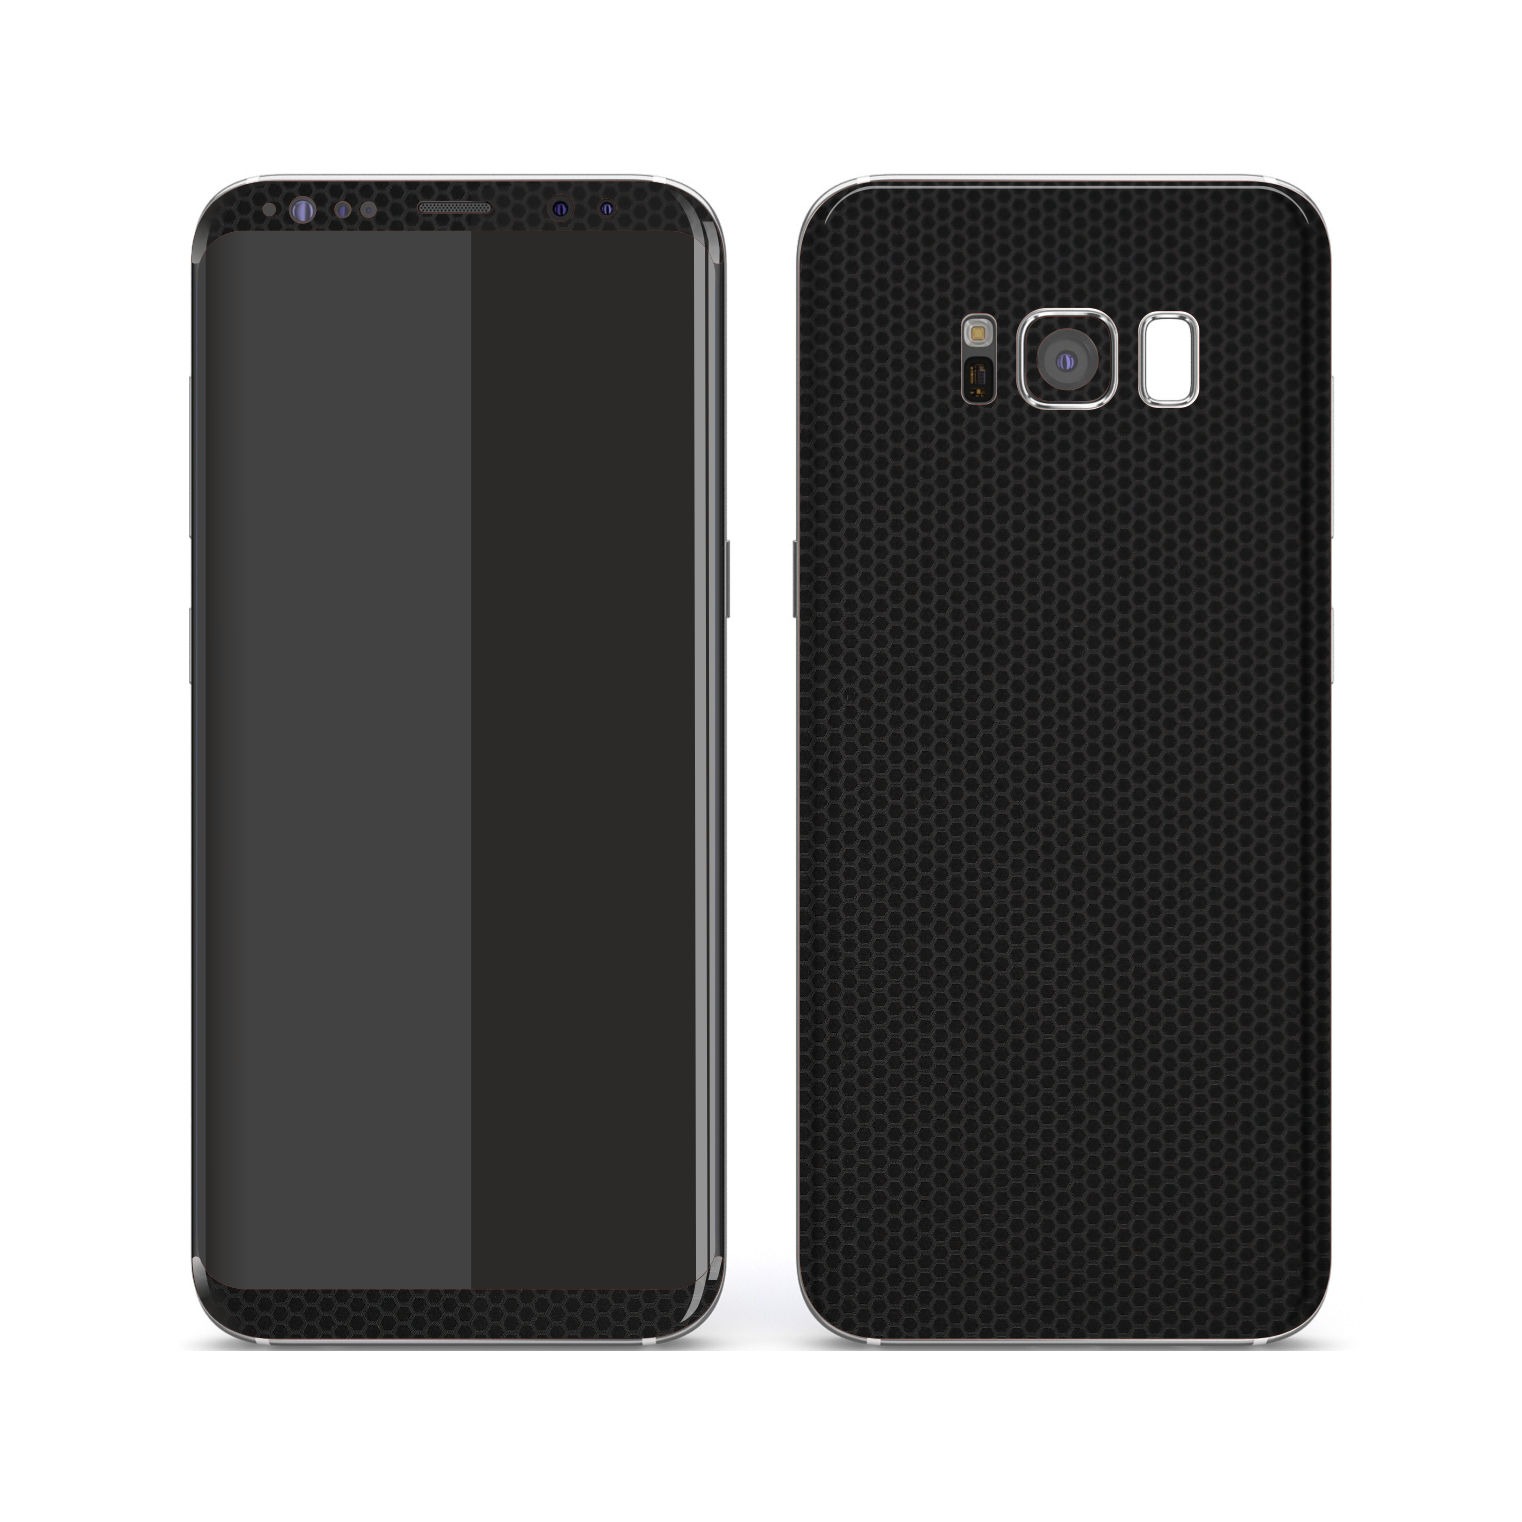 Samsung Galaxy S8 Black Matrix Textured Skin Wrap Decal 3M by EasySkinz